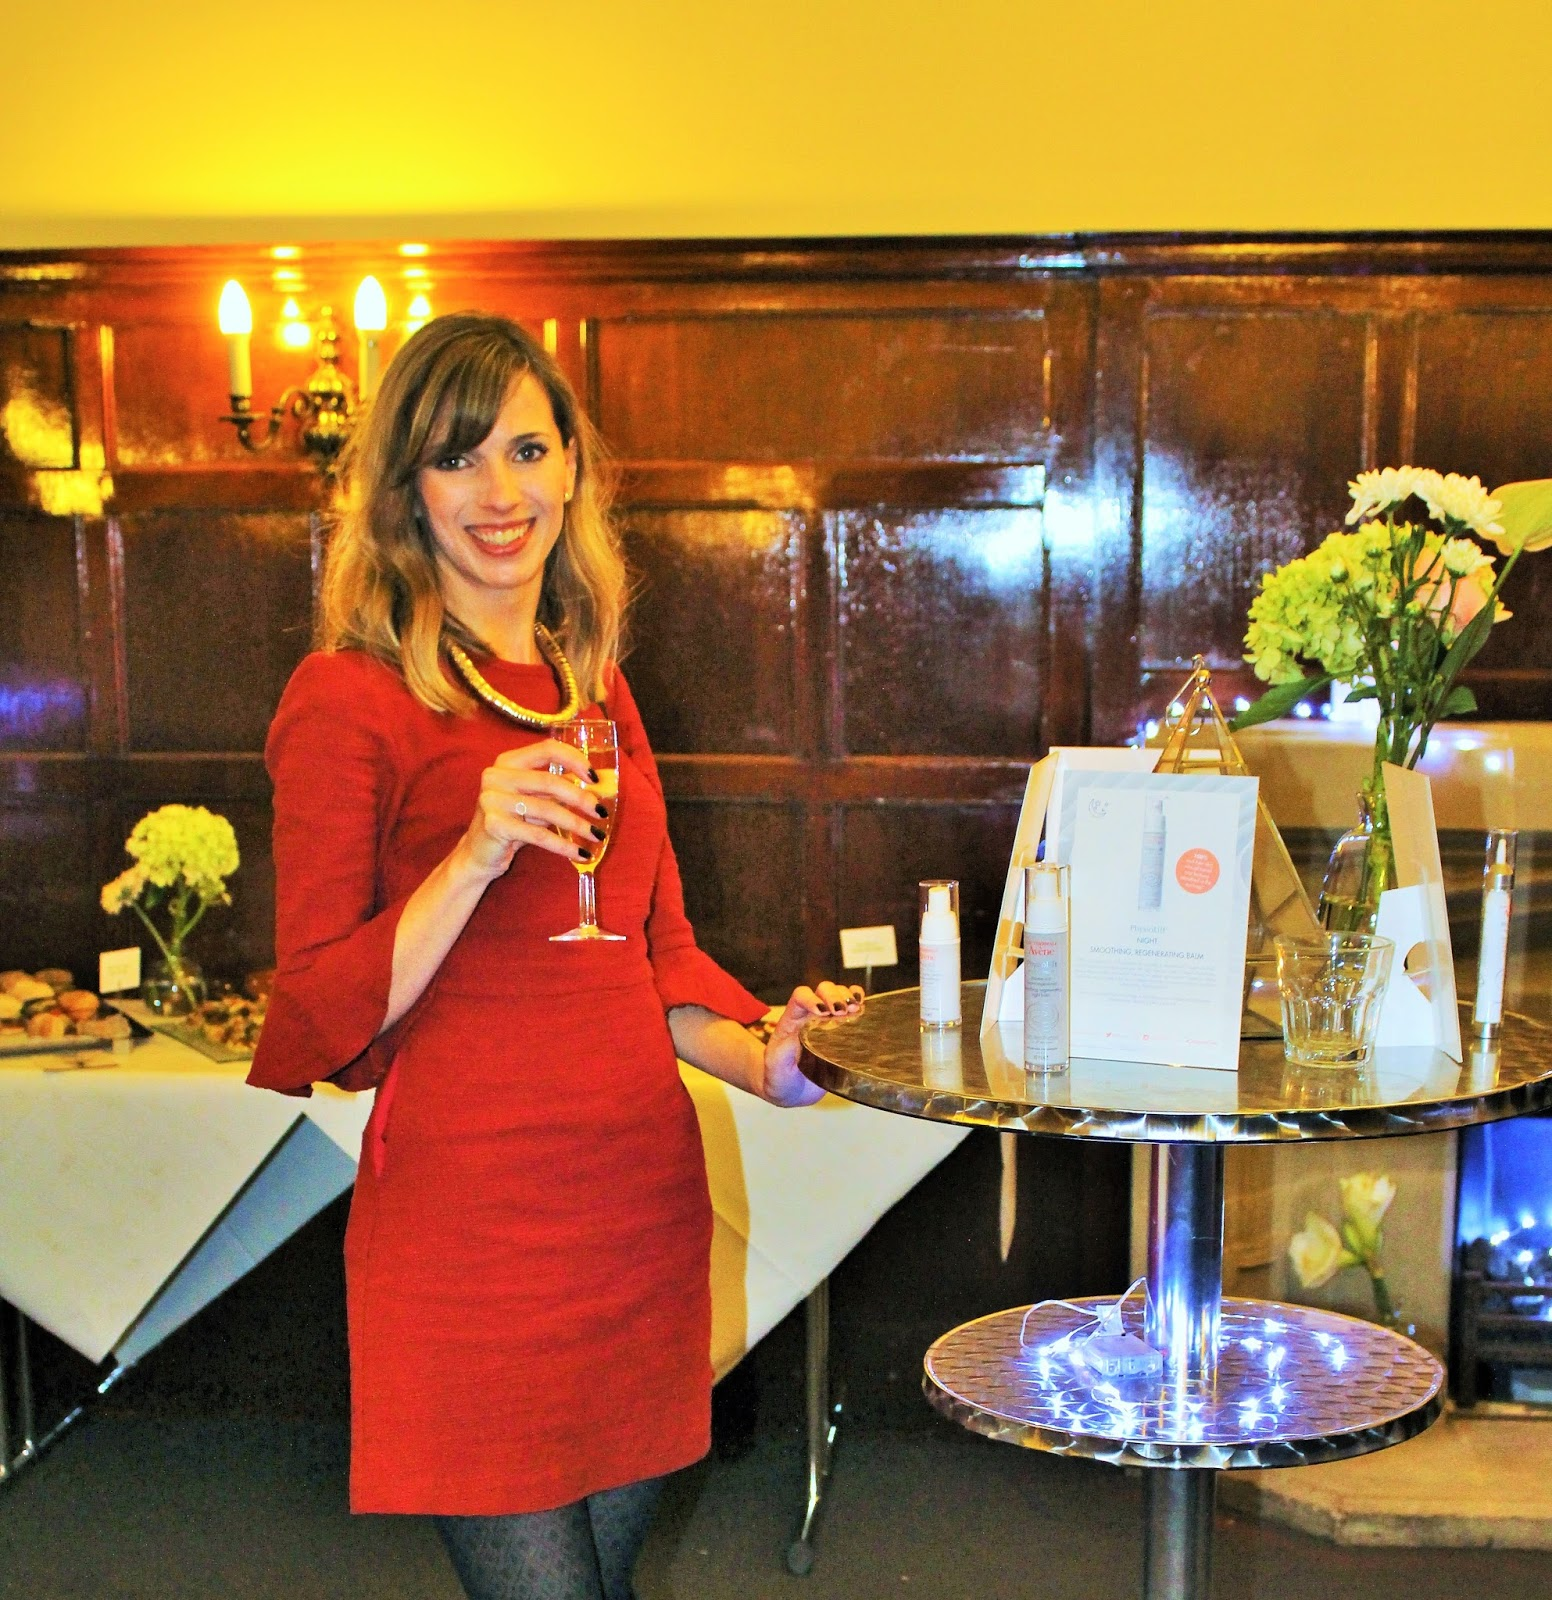 Avene 30 Plus Event - OOTN with Topshop Dress